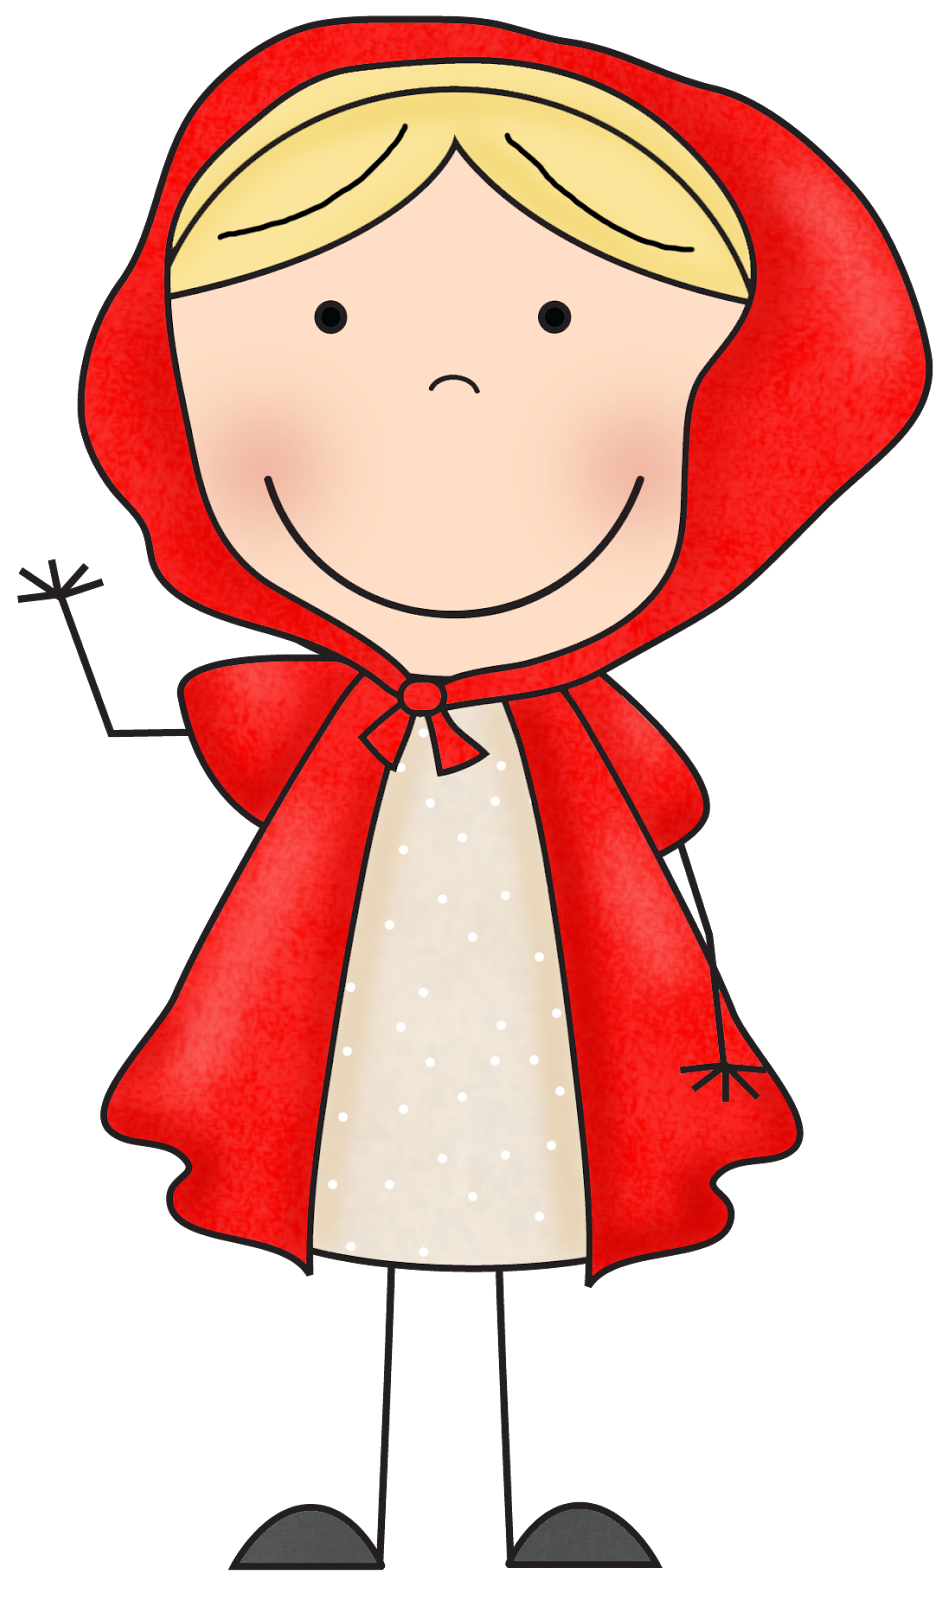 Free Red Riding Hood Clipart, Download Free Clip Art, Free.